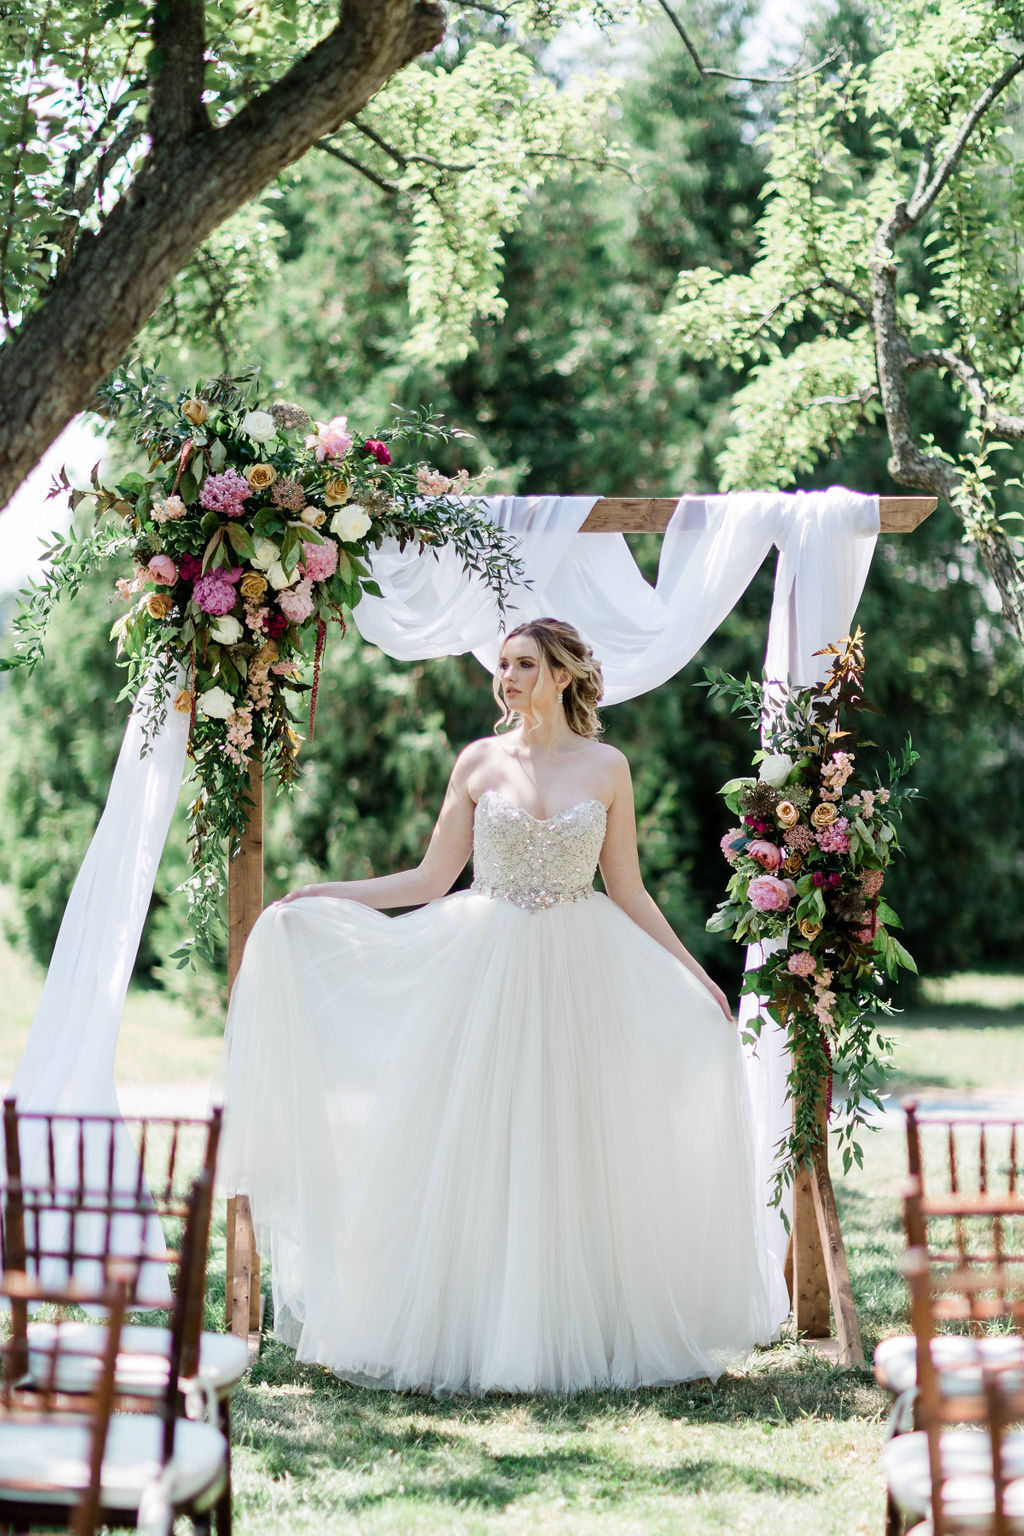 A bride standing under a floral archway at Kurtz Orchards in Niagara-on-the-Lake with a flowing white dress